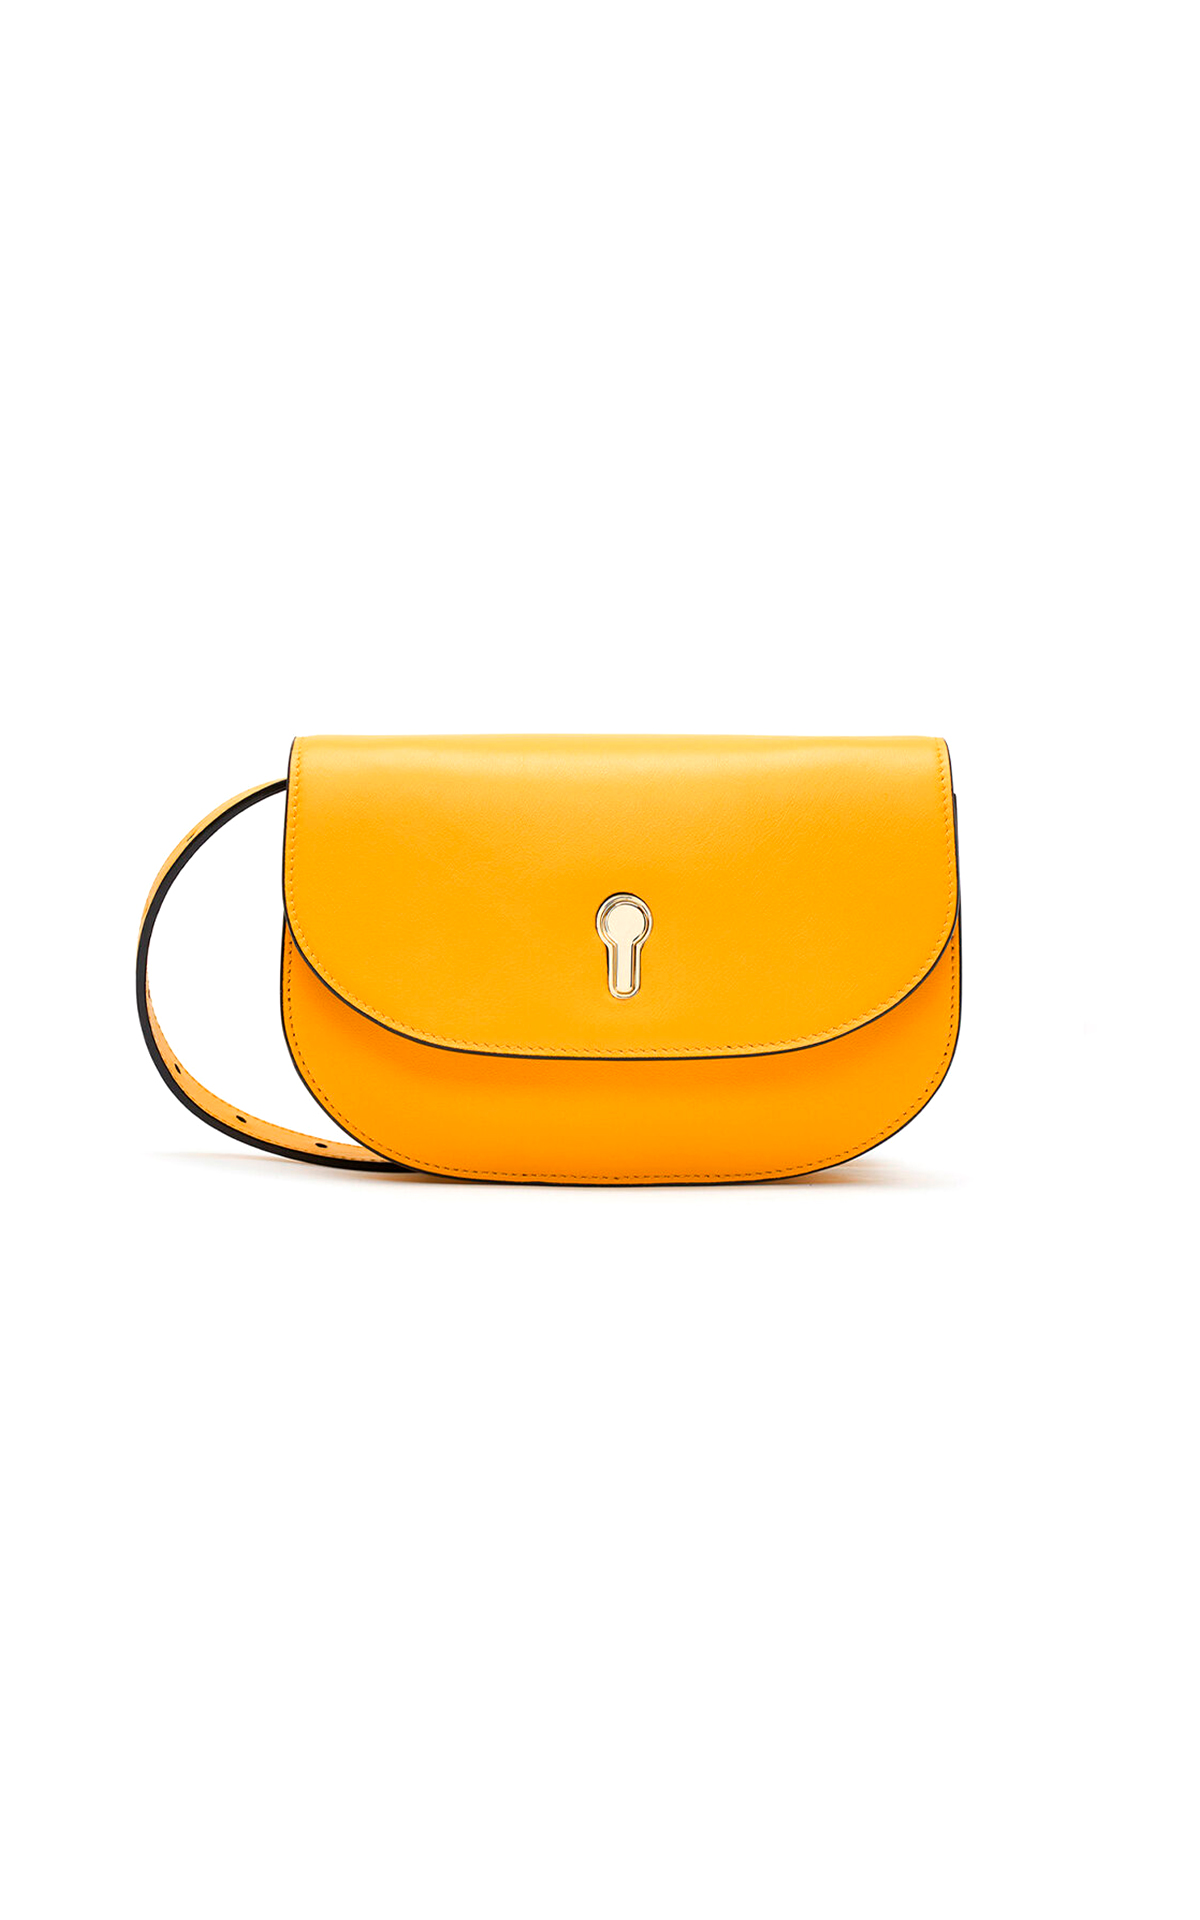 Bolso amarillo Clio Bally